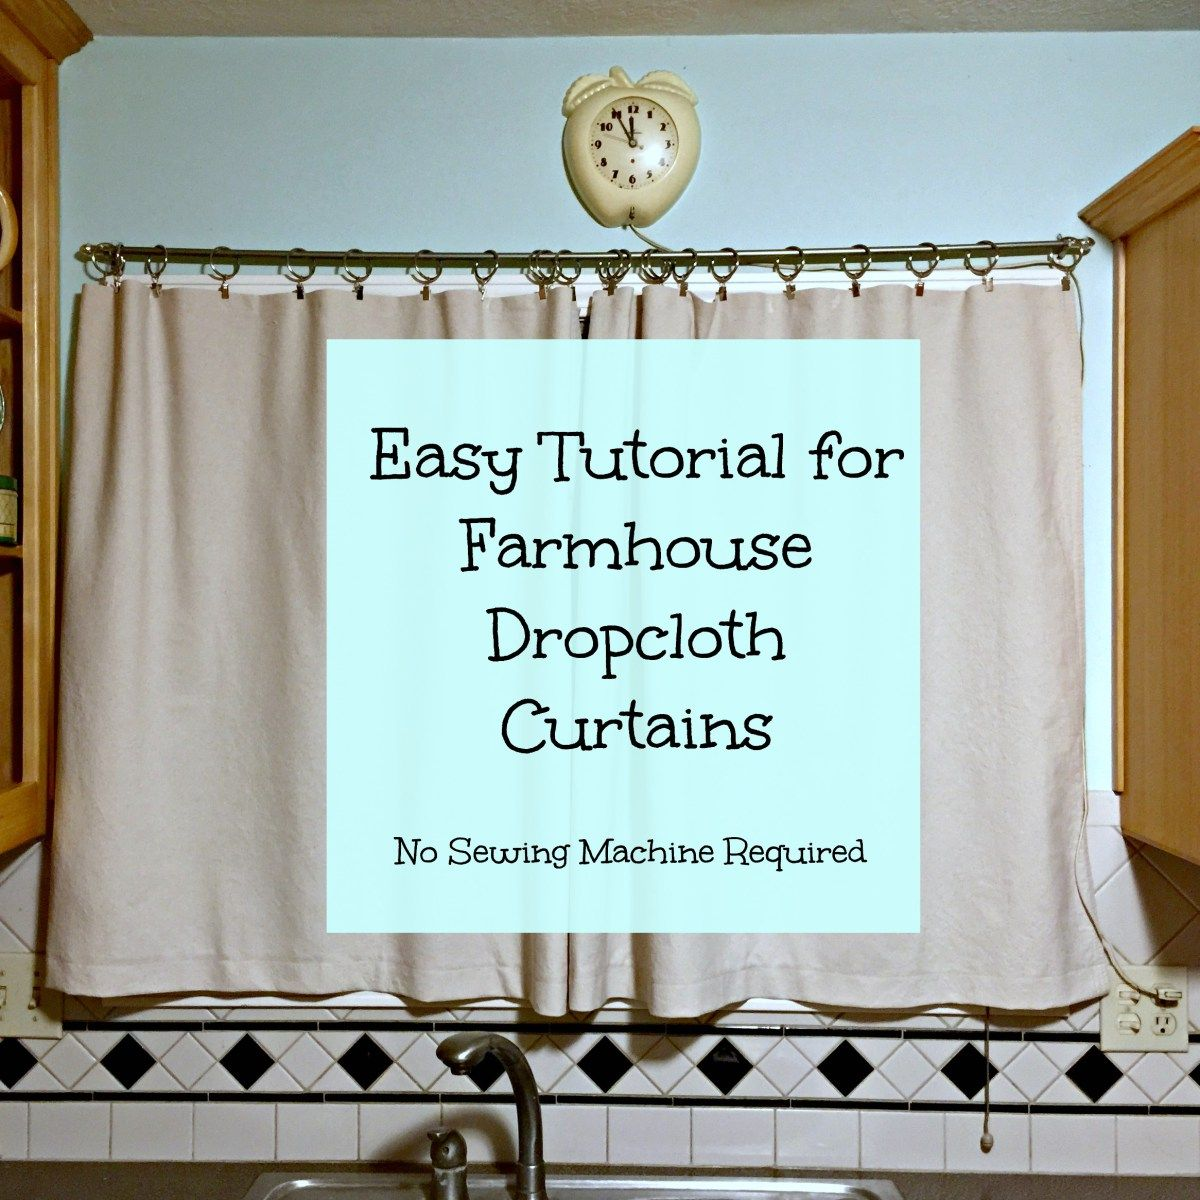 Easy Tutorial For Farmhouse Kitchen Curtains Using Dropcloth Diy